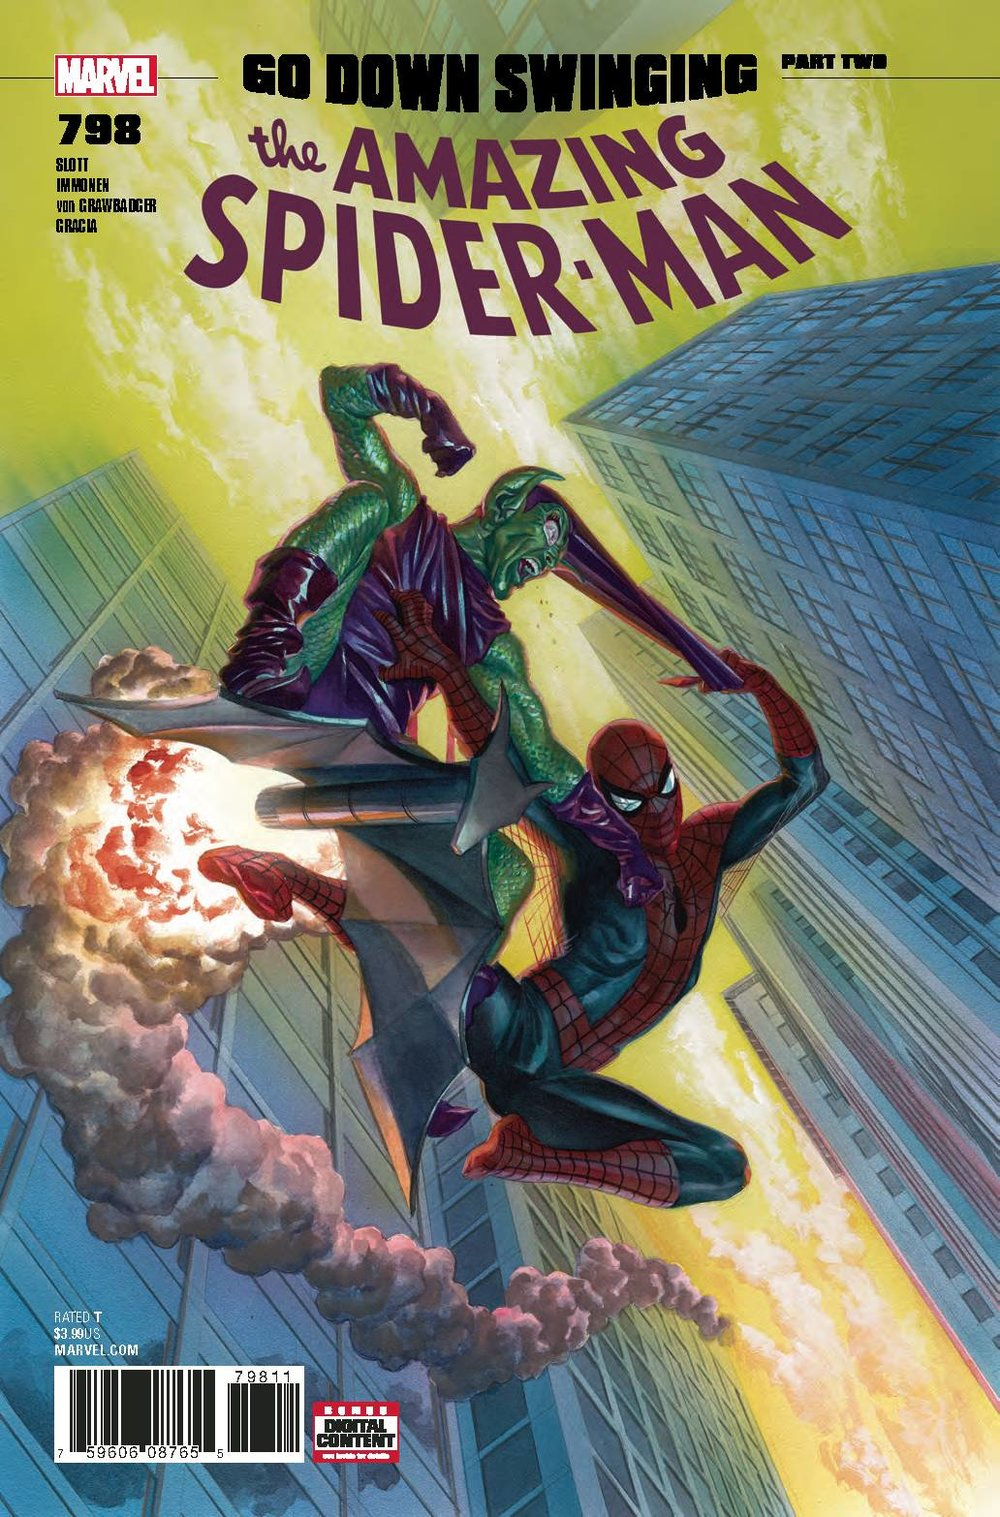 AMAZING SPIDER-MAN 798 LEG.jpg